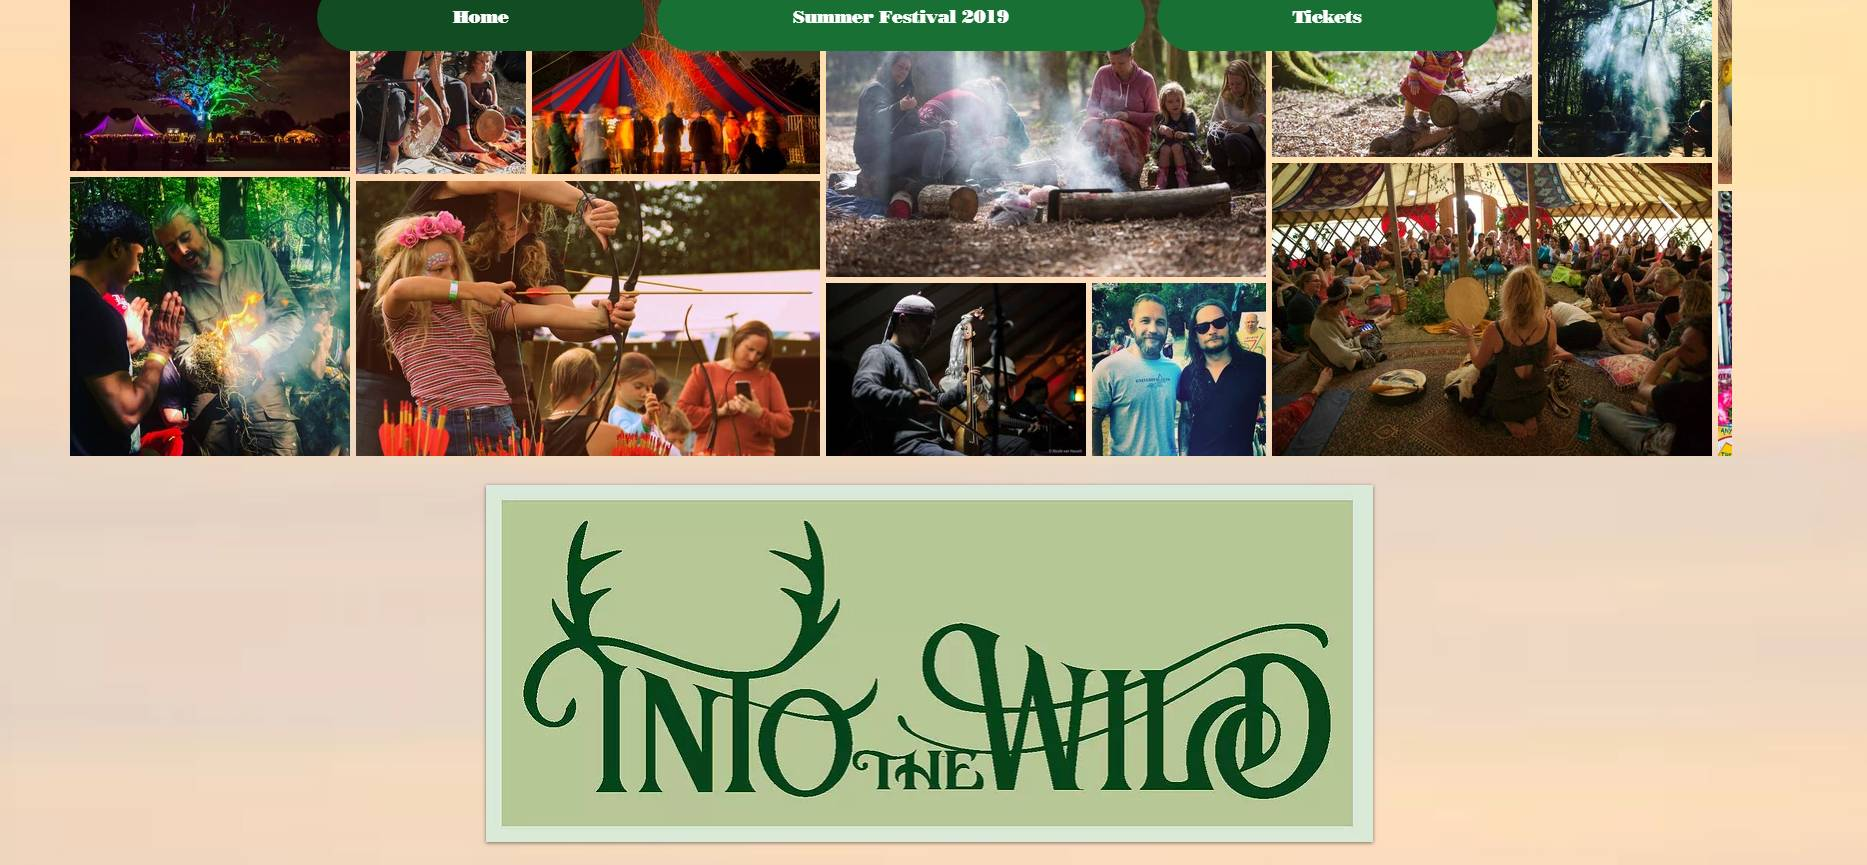 Into_the_wild_festival_Great_Festivals_&_Events_UK,_Sussex_-_2019-08-19_16.43.26.jpg